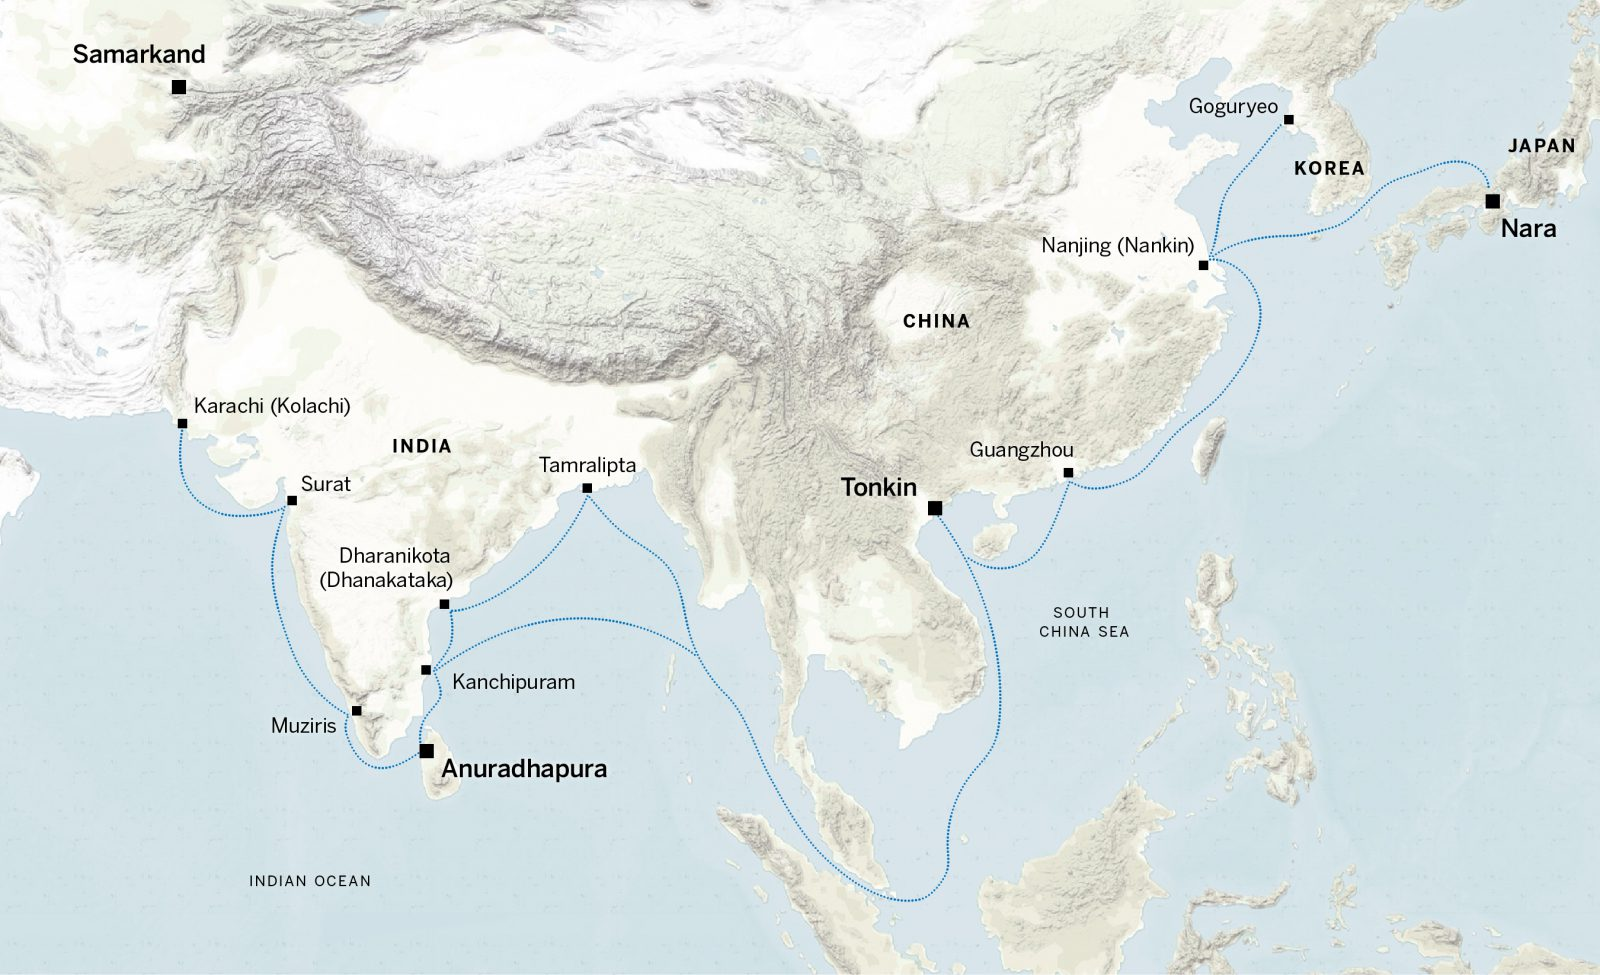 Sea routes connected Karachi in Pakistan to Nara in Japan